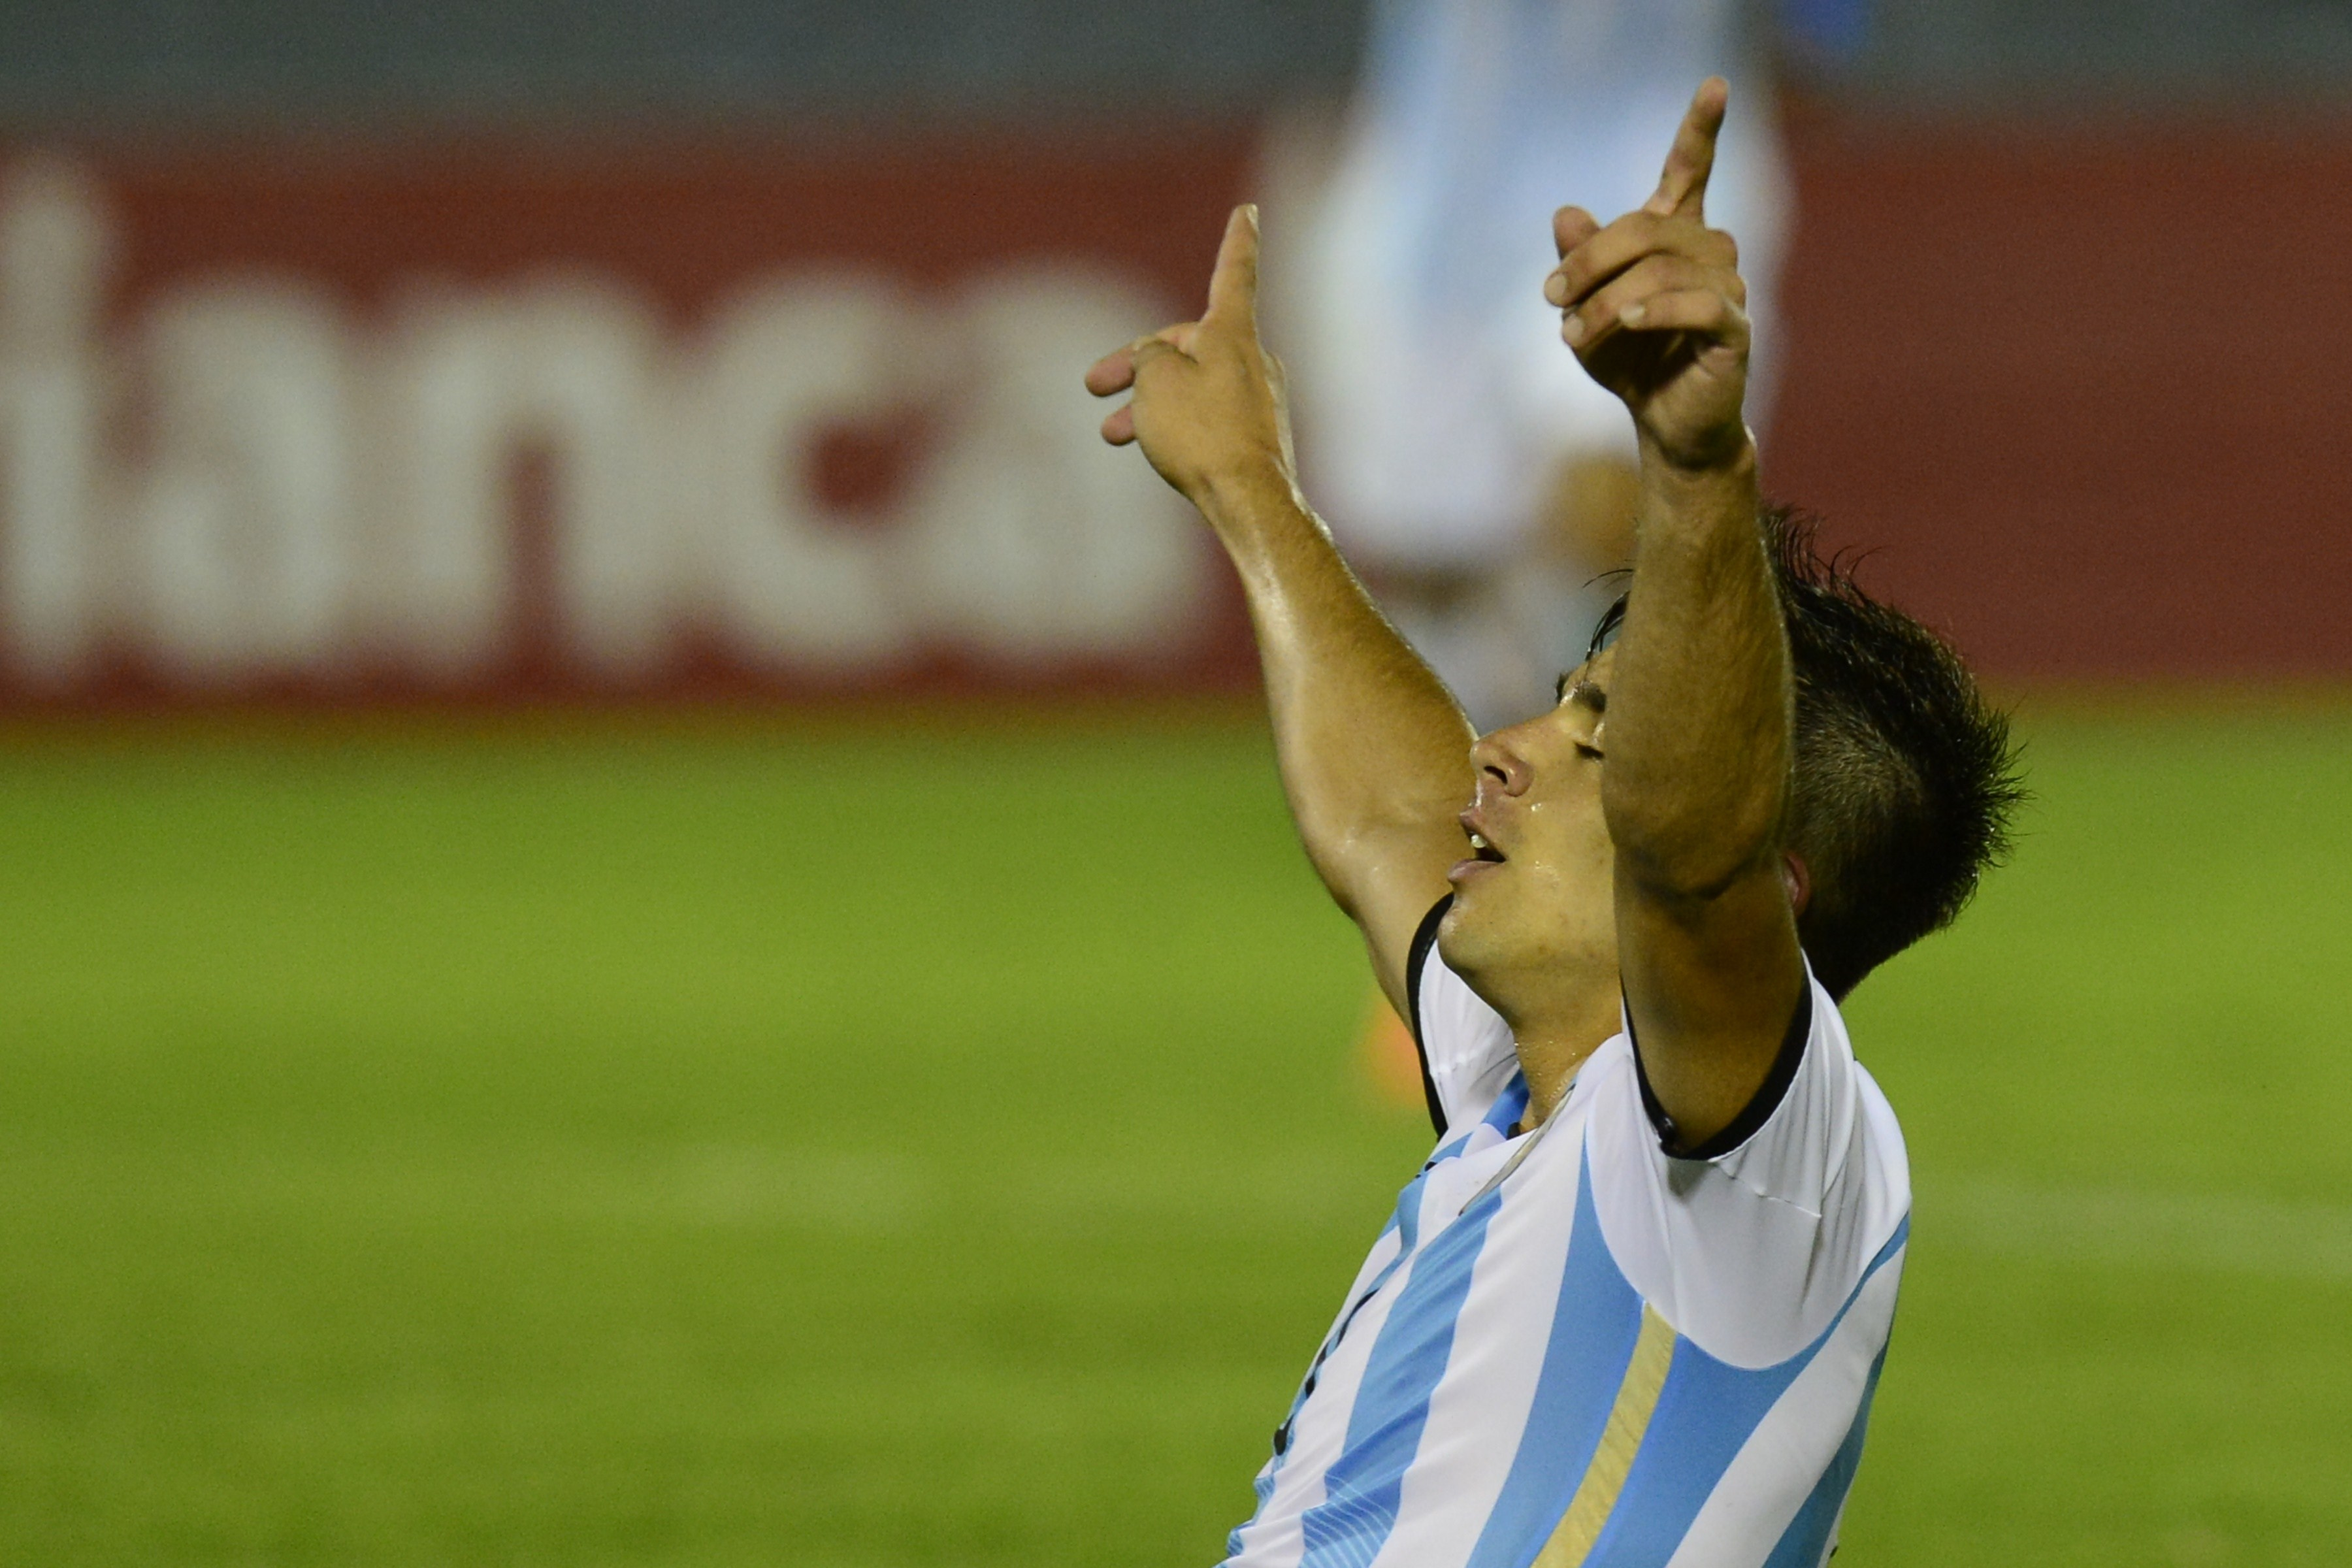 Argentina's forward Giovanni Simeone, celebrates his goal against Paraguay during their South American U-20 football match at the Centenario stadium in Montevideo on February 4, 2015. AFP PHOTO / PABLO PORCIUNCULA (Photo credit should read PABLO PORCIUNCULA/AFP/Getty Images)